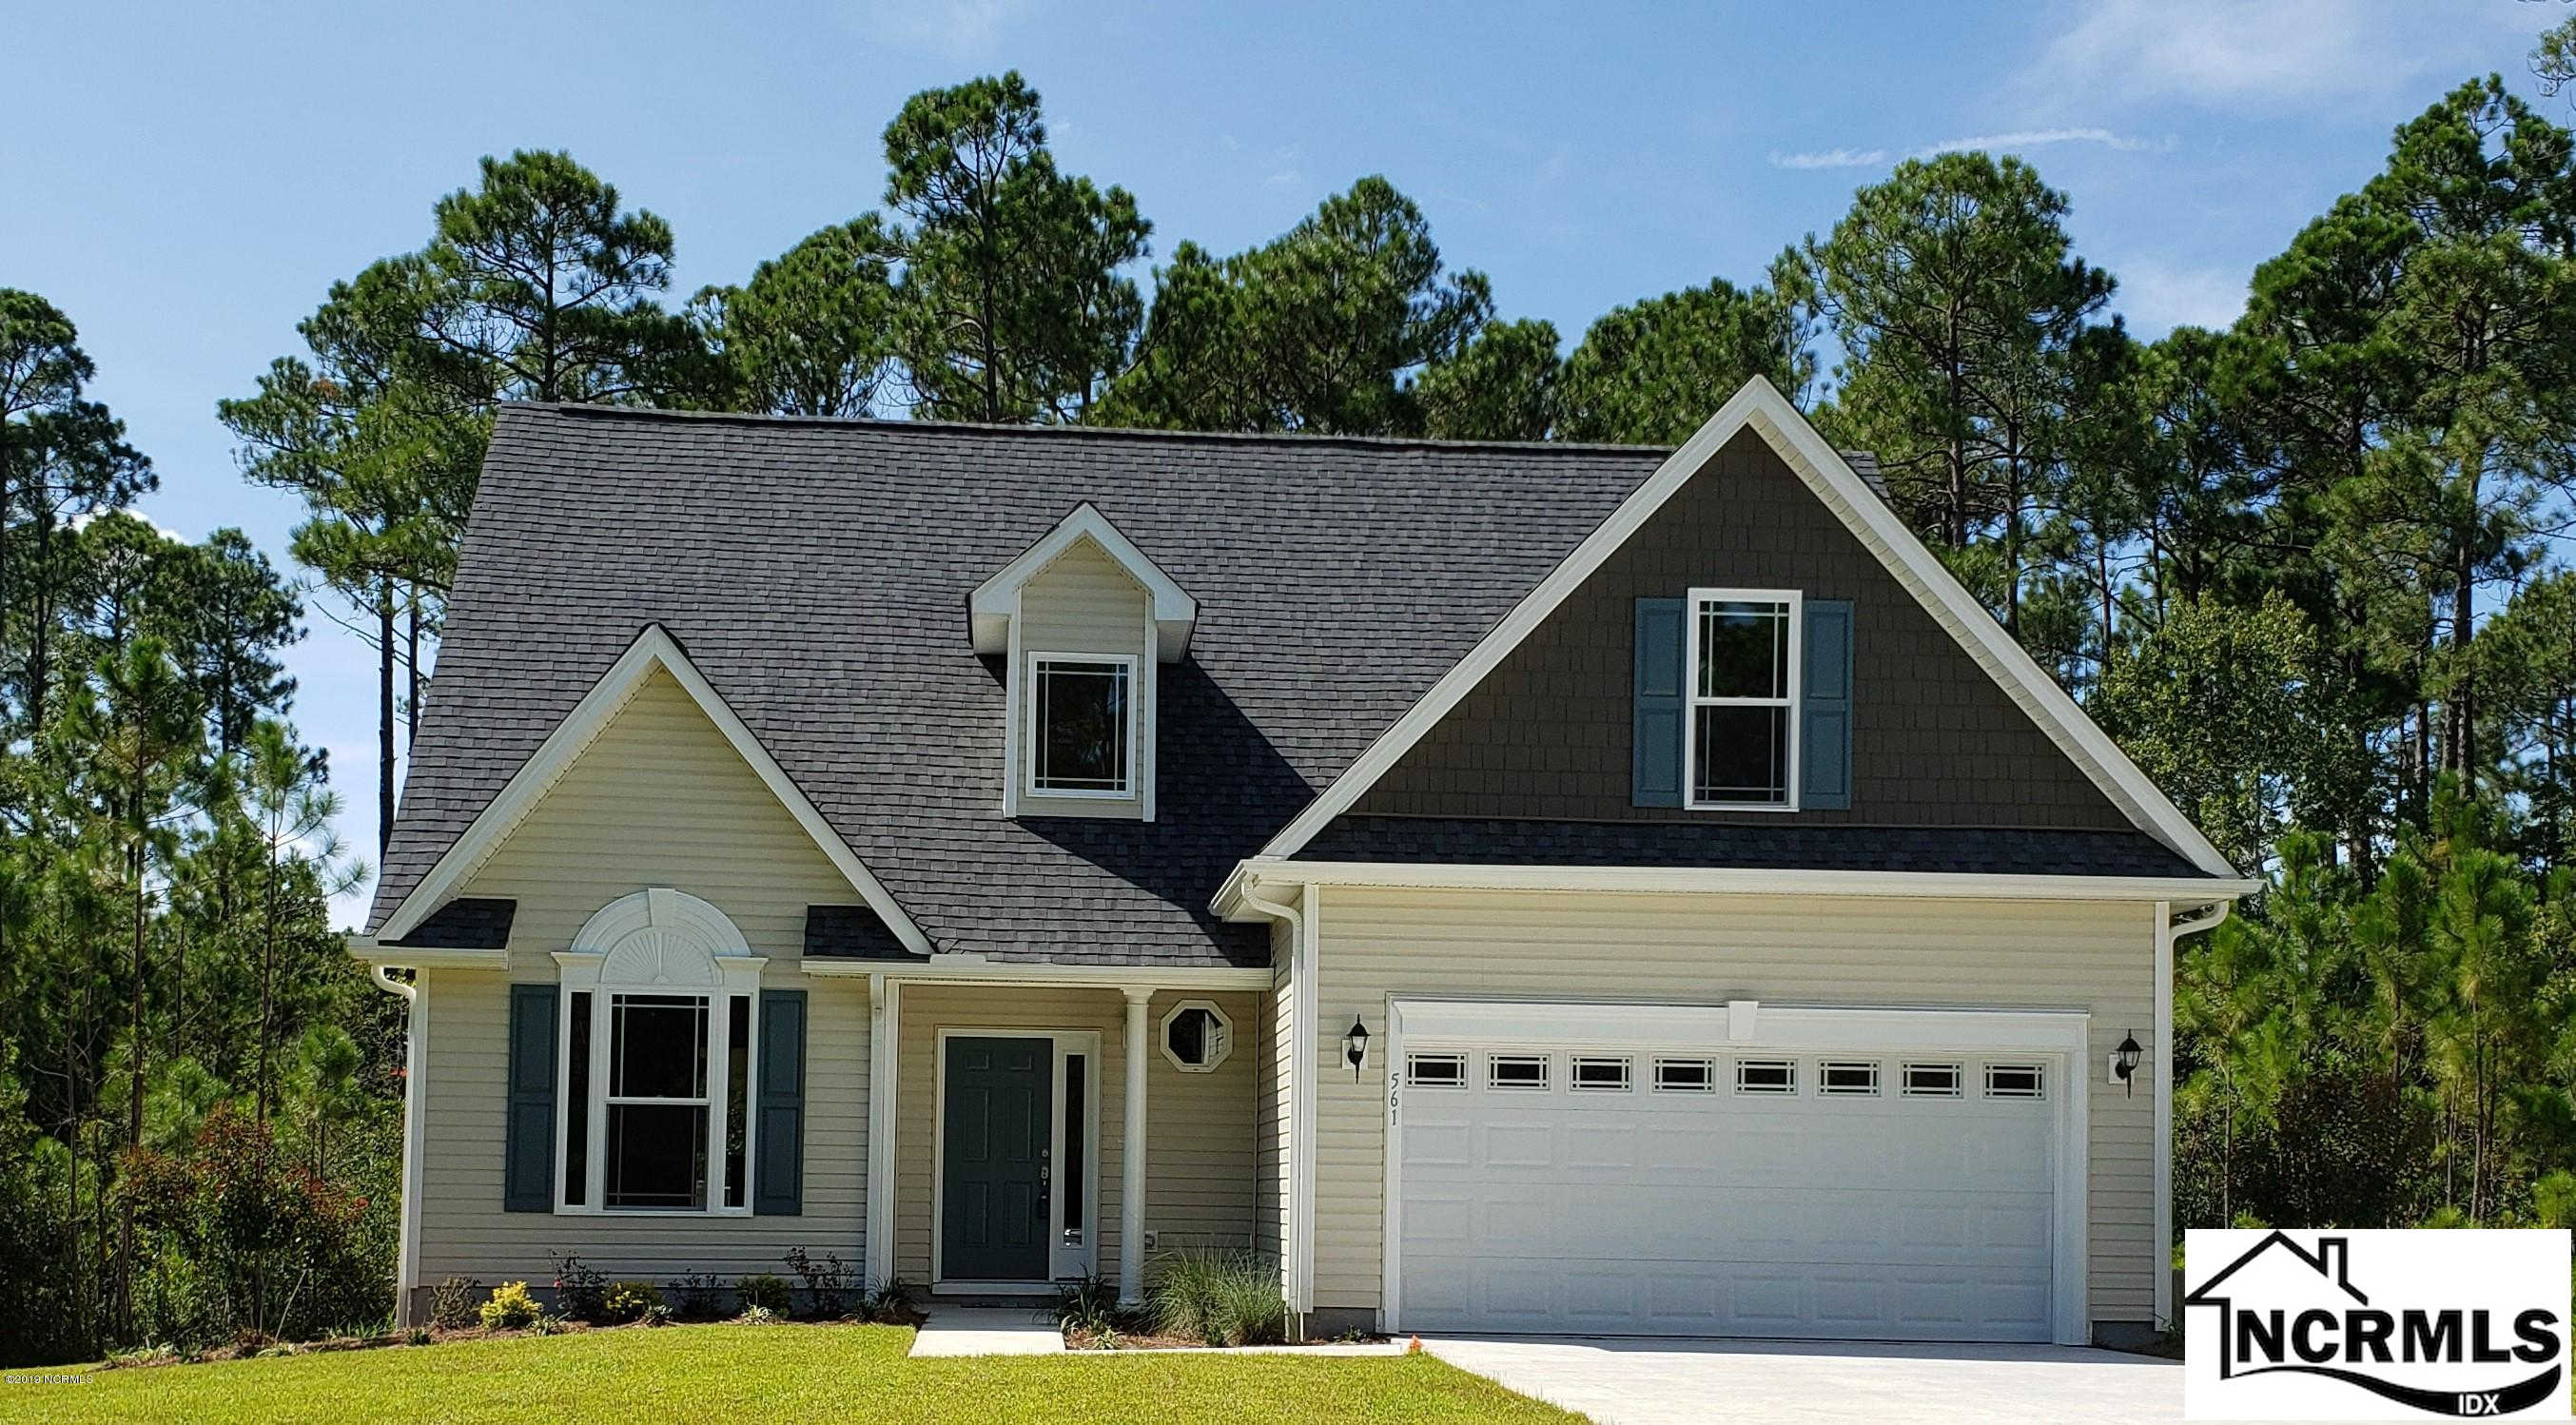 561 Greenock Court, Shallotte, NC 28470 now has a new price of $257,460!